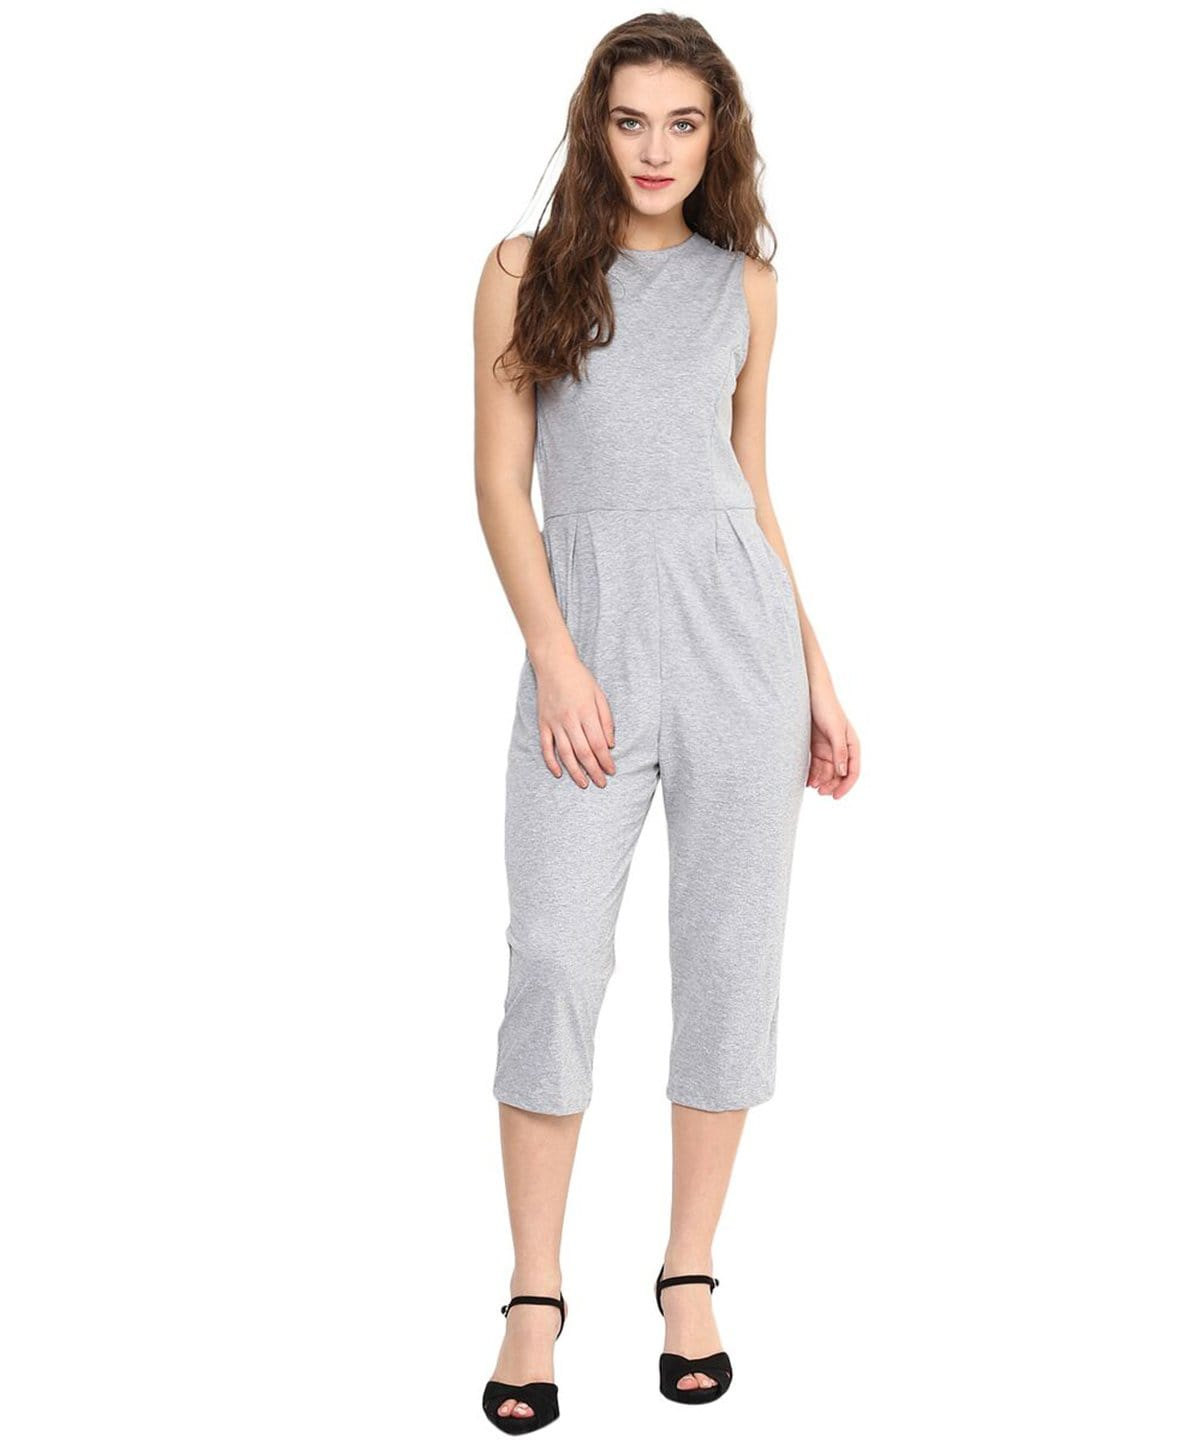 Grey Solid Cropped Cotton Culottte Jumpsuit - Uptownie